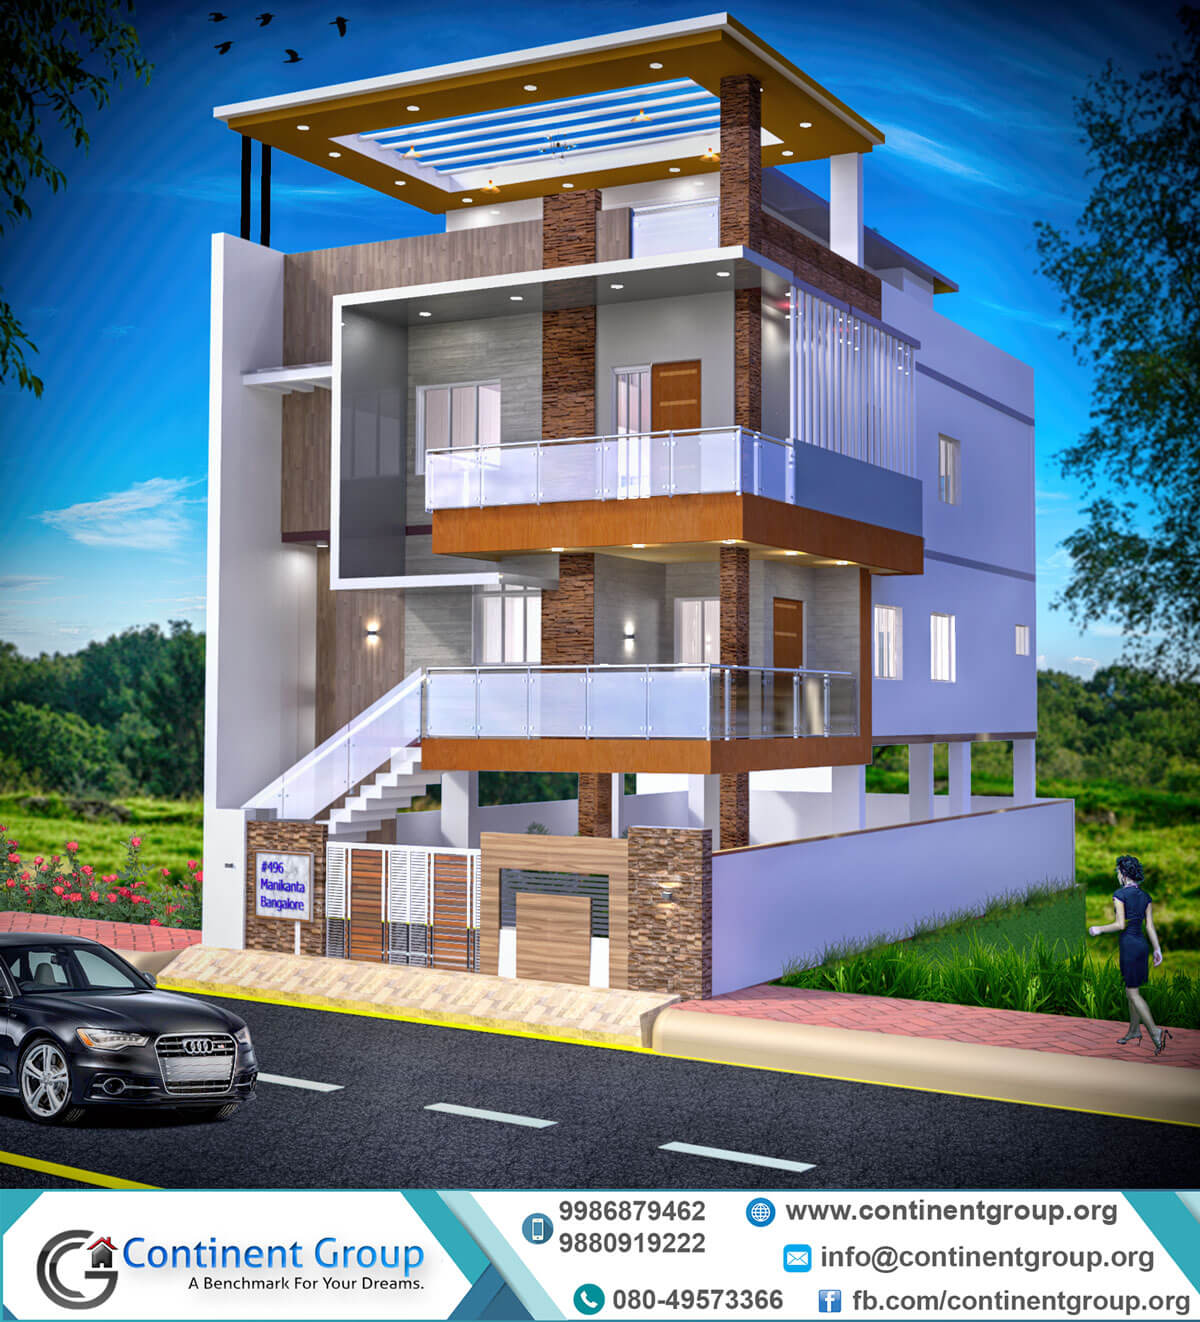 Front Elevation Designs For 4 Floors Building : Appealing d elevation design photo photos best interior